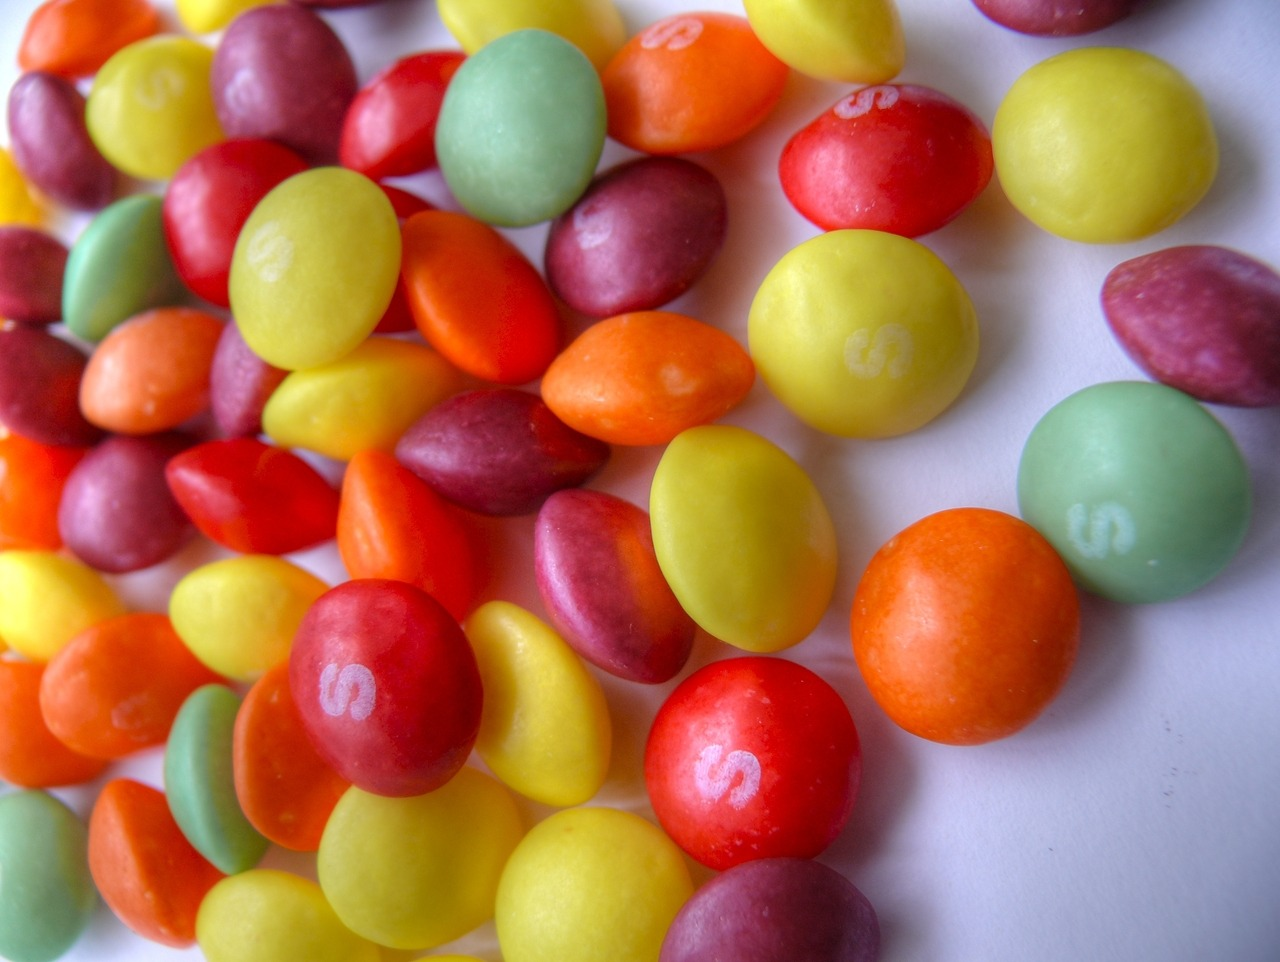 strangers-have-the-best-candy:  http://strangers-have-the-best-candy.tumblr.com/